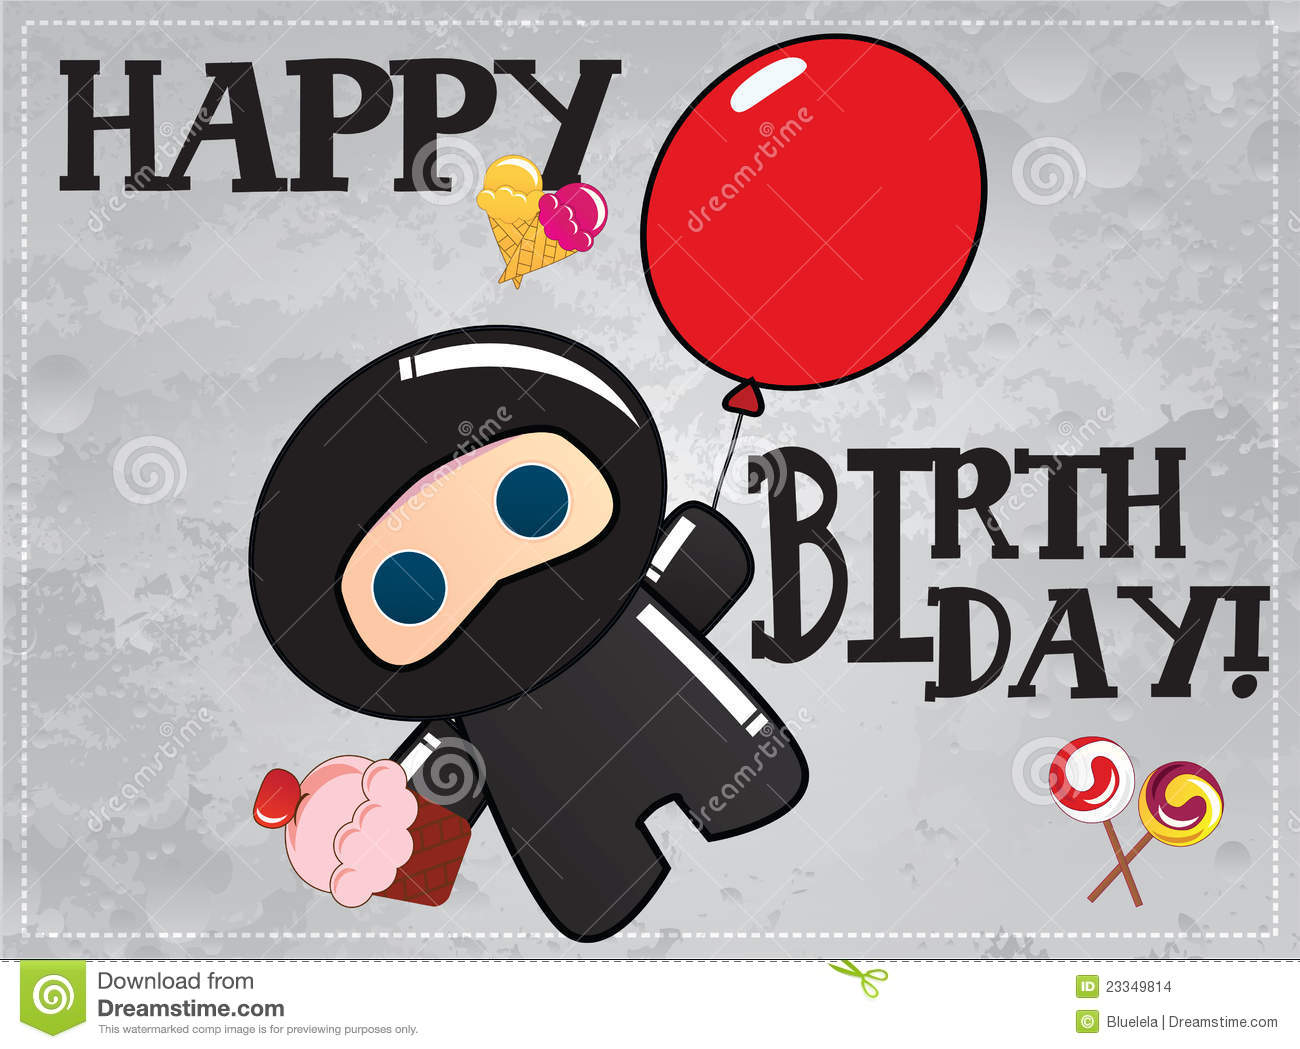 Birthday Cards Cartoon ~ Happy birthday photos and images cards cartoons wishes ~ the best